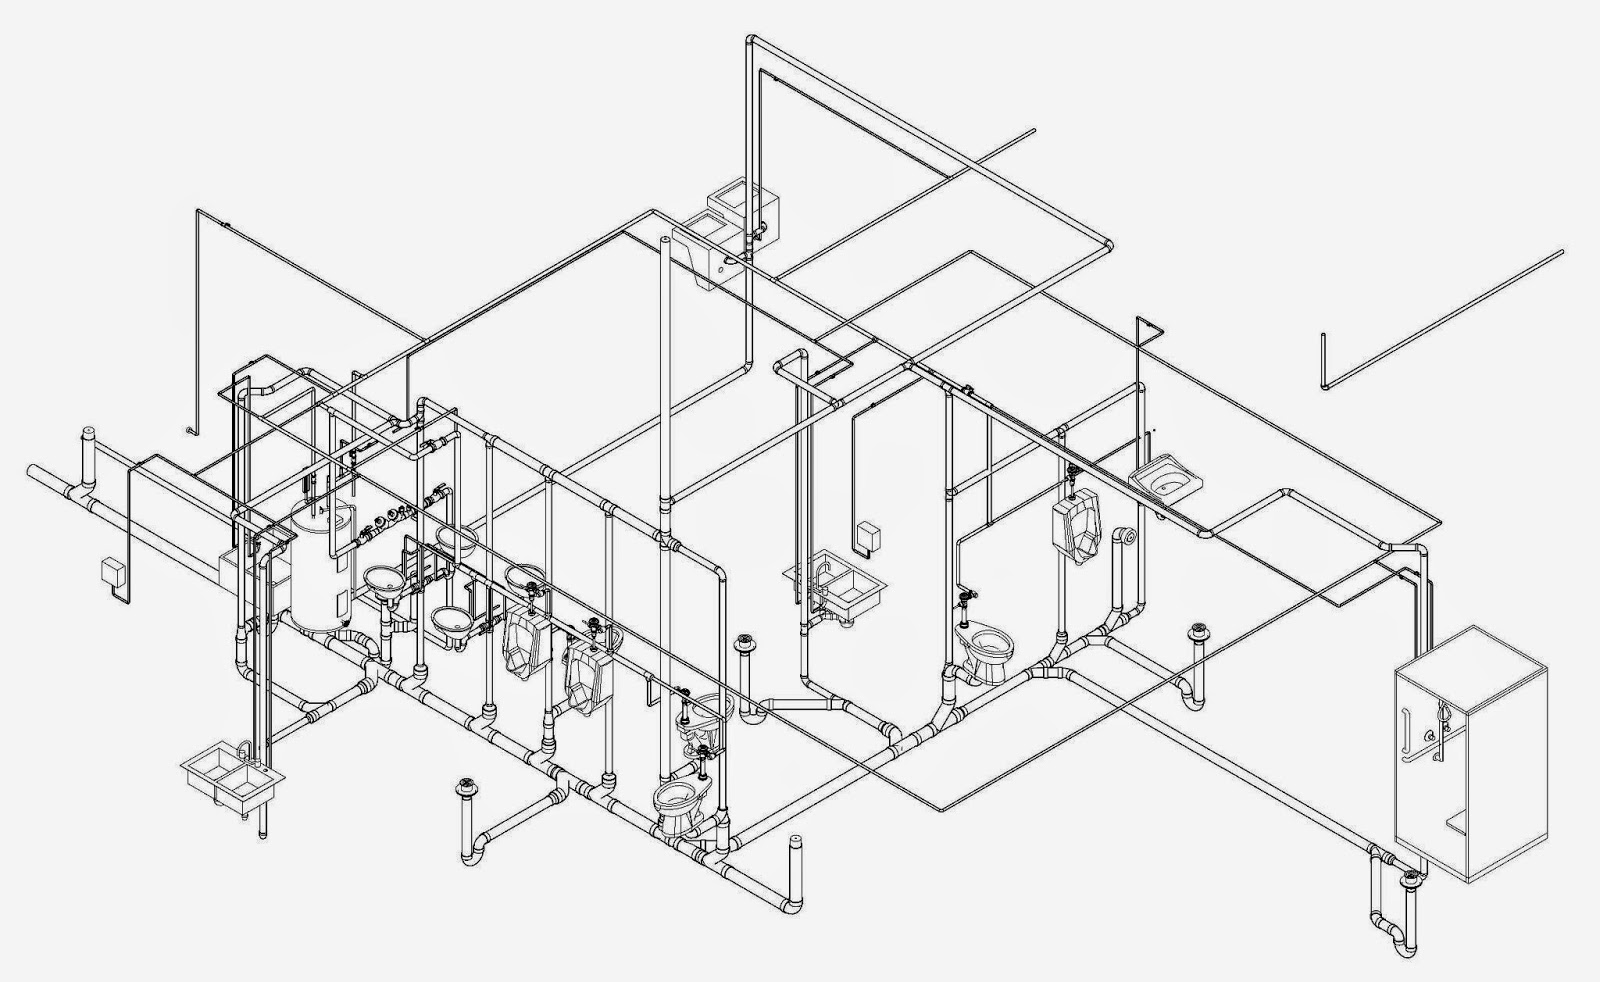 Plumbing contractor los angeles isometric plumbing sketch you can also purchase isometric graph paper or use printable graph paper isometric blueprint sketch plumbing contractor plumbingengineer malvernweather Gallery